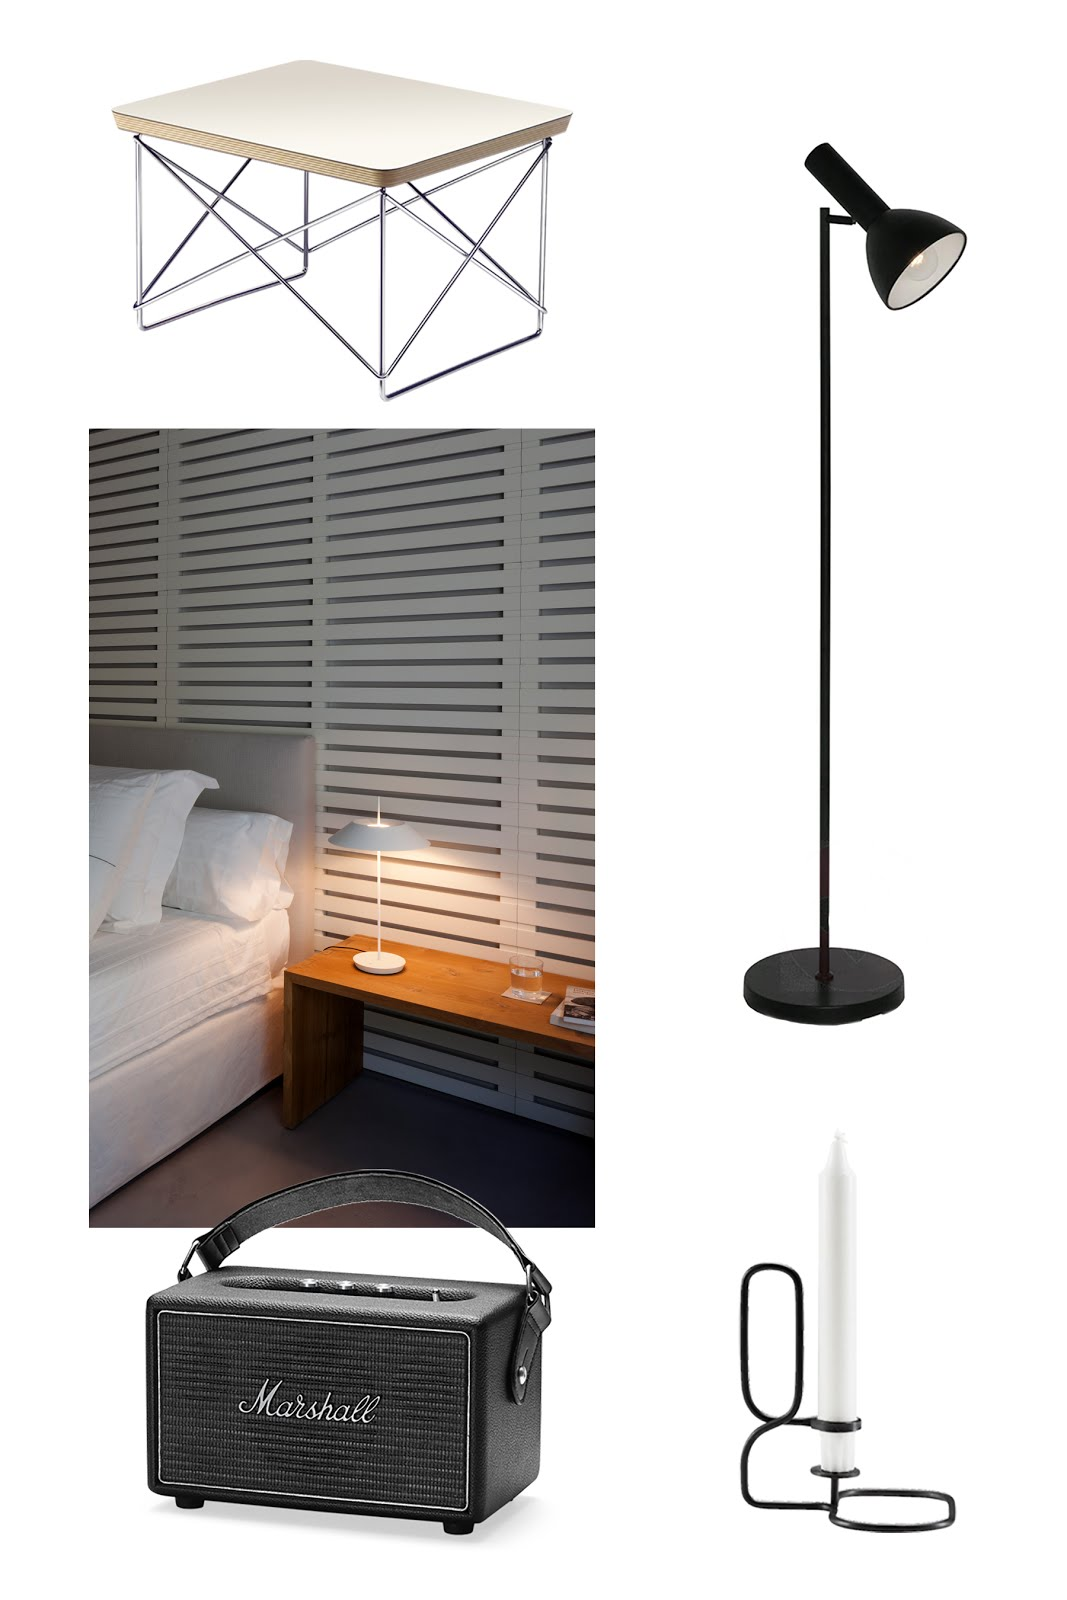 Vitra, eames ltr table, Gino lamp, lampen 24, marshall killburn, speaker, steel, hay lup candle, vibia mayfair lamp